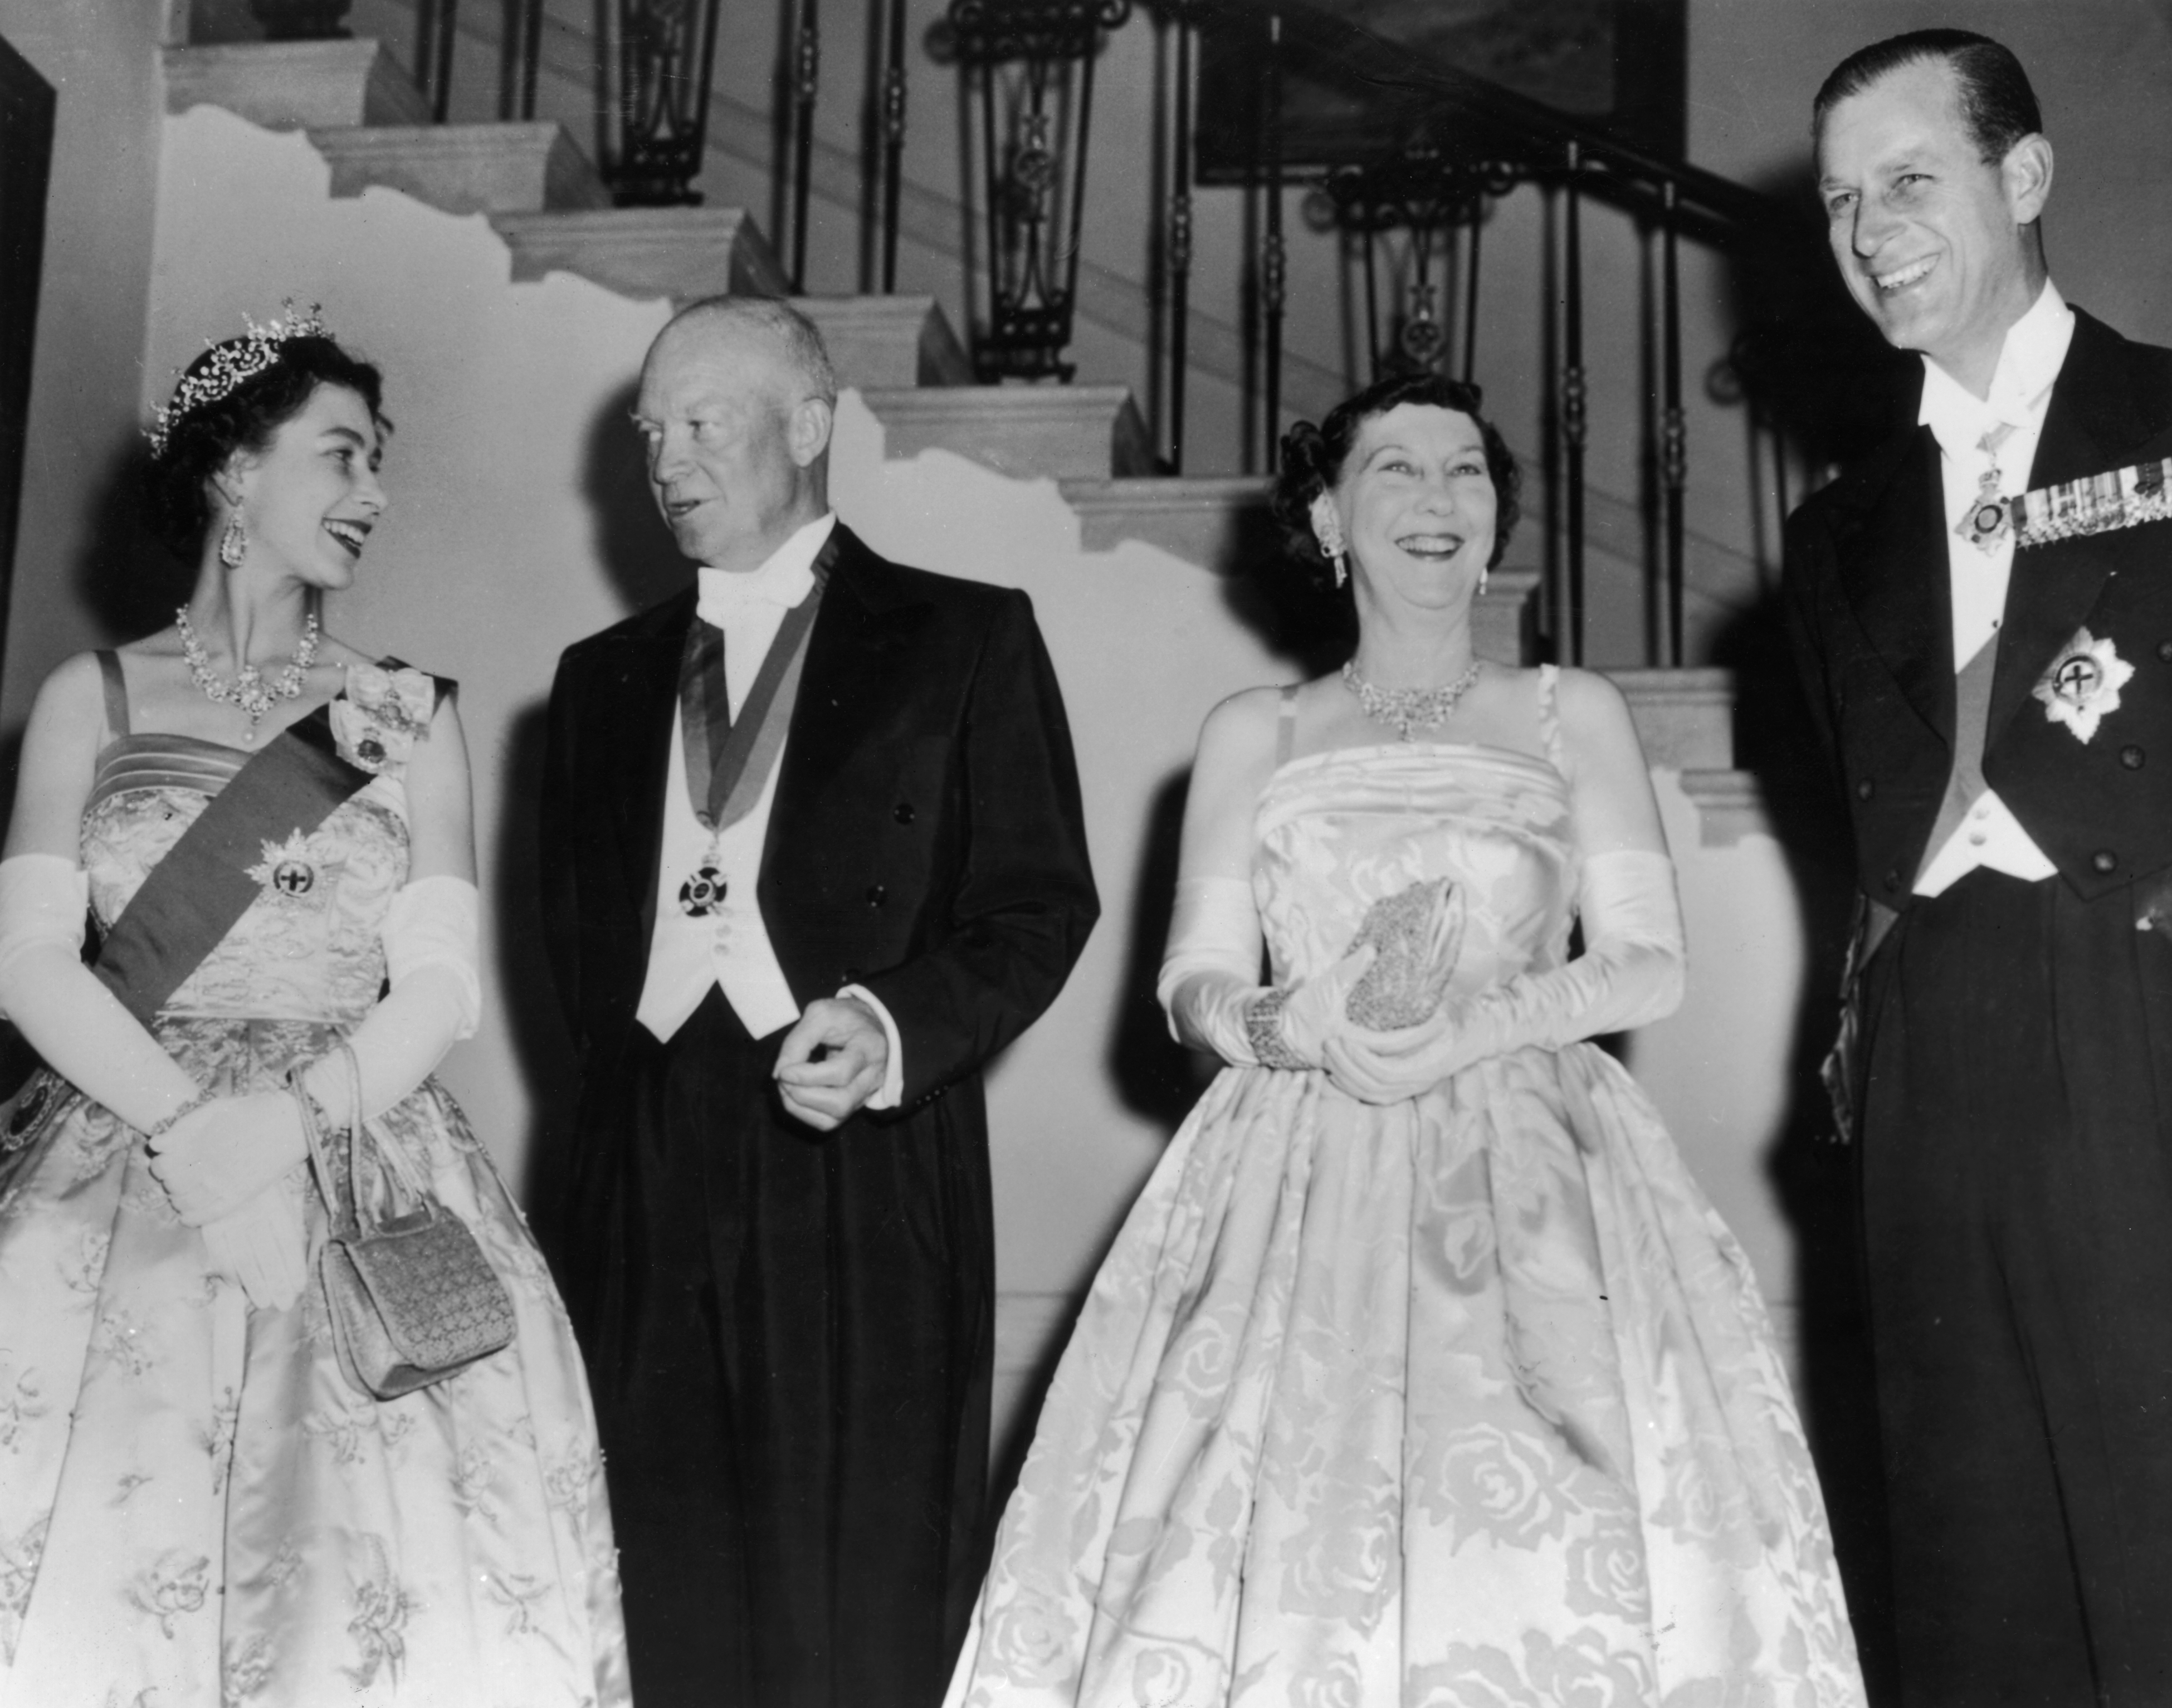 20th October 1957: Queen Elizabeth II, US president Dwight D Eisenhower (1890 - 1969) with his wife Mamie (1896 - 1979) and Prince Philip, Duke of Edinburgh at a White House State banquet.